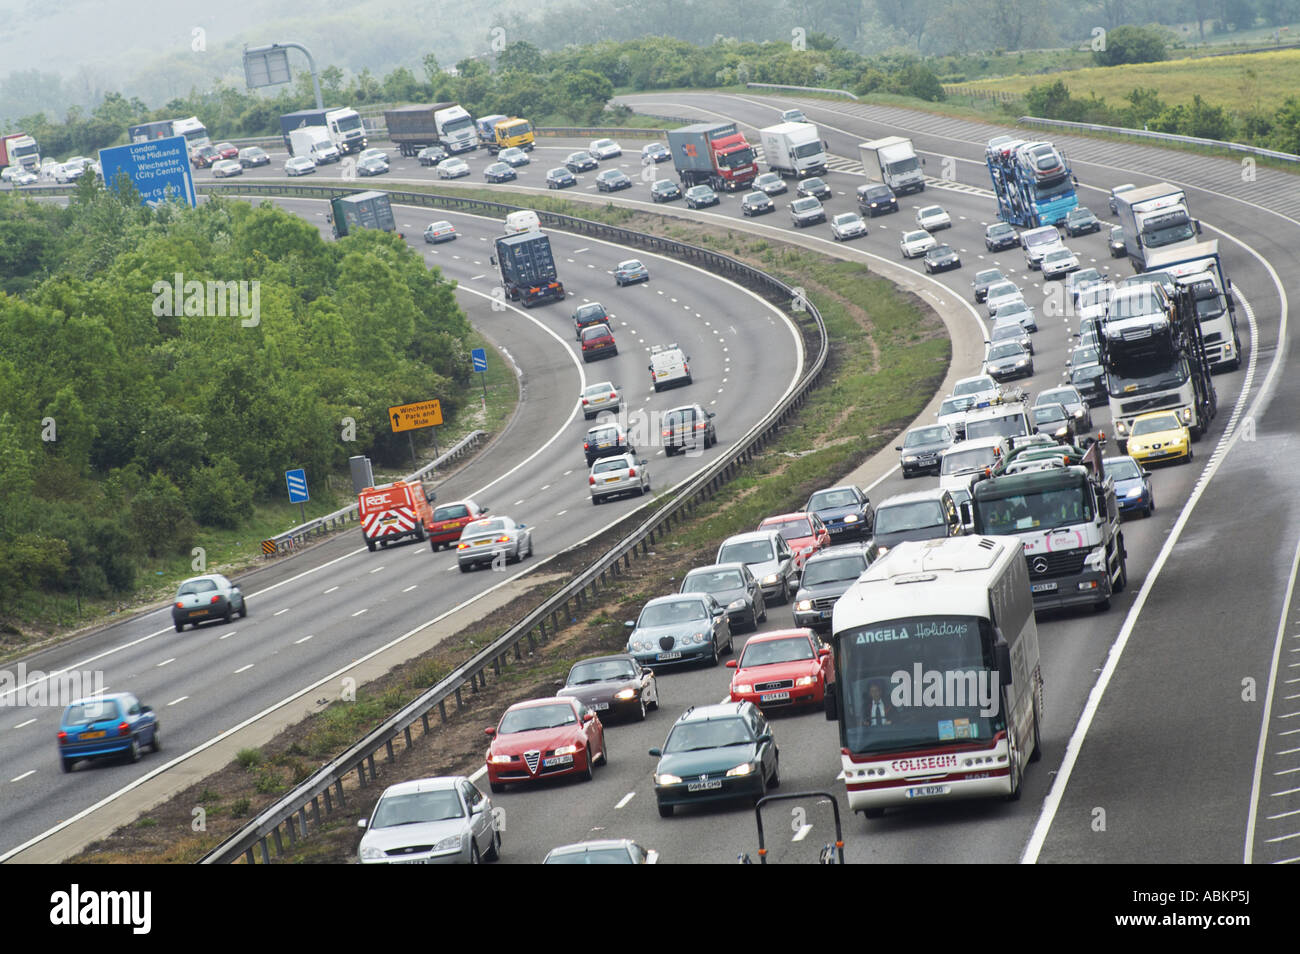 congested m3 motorway UK - Stock Image